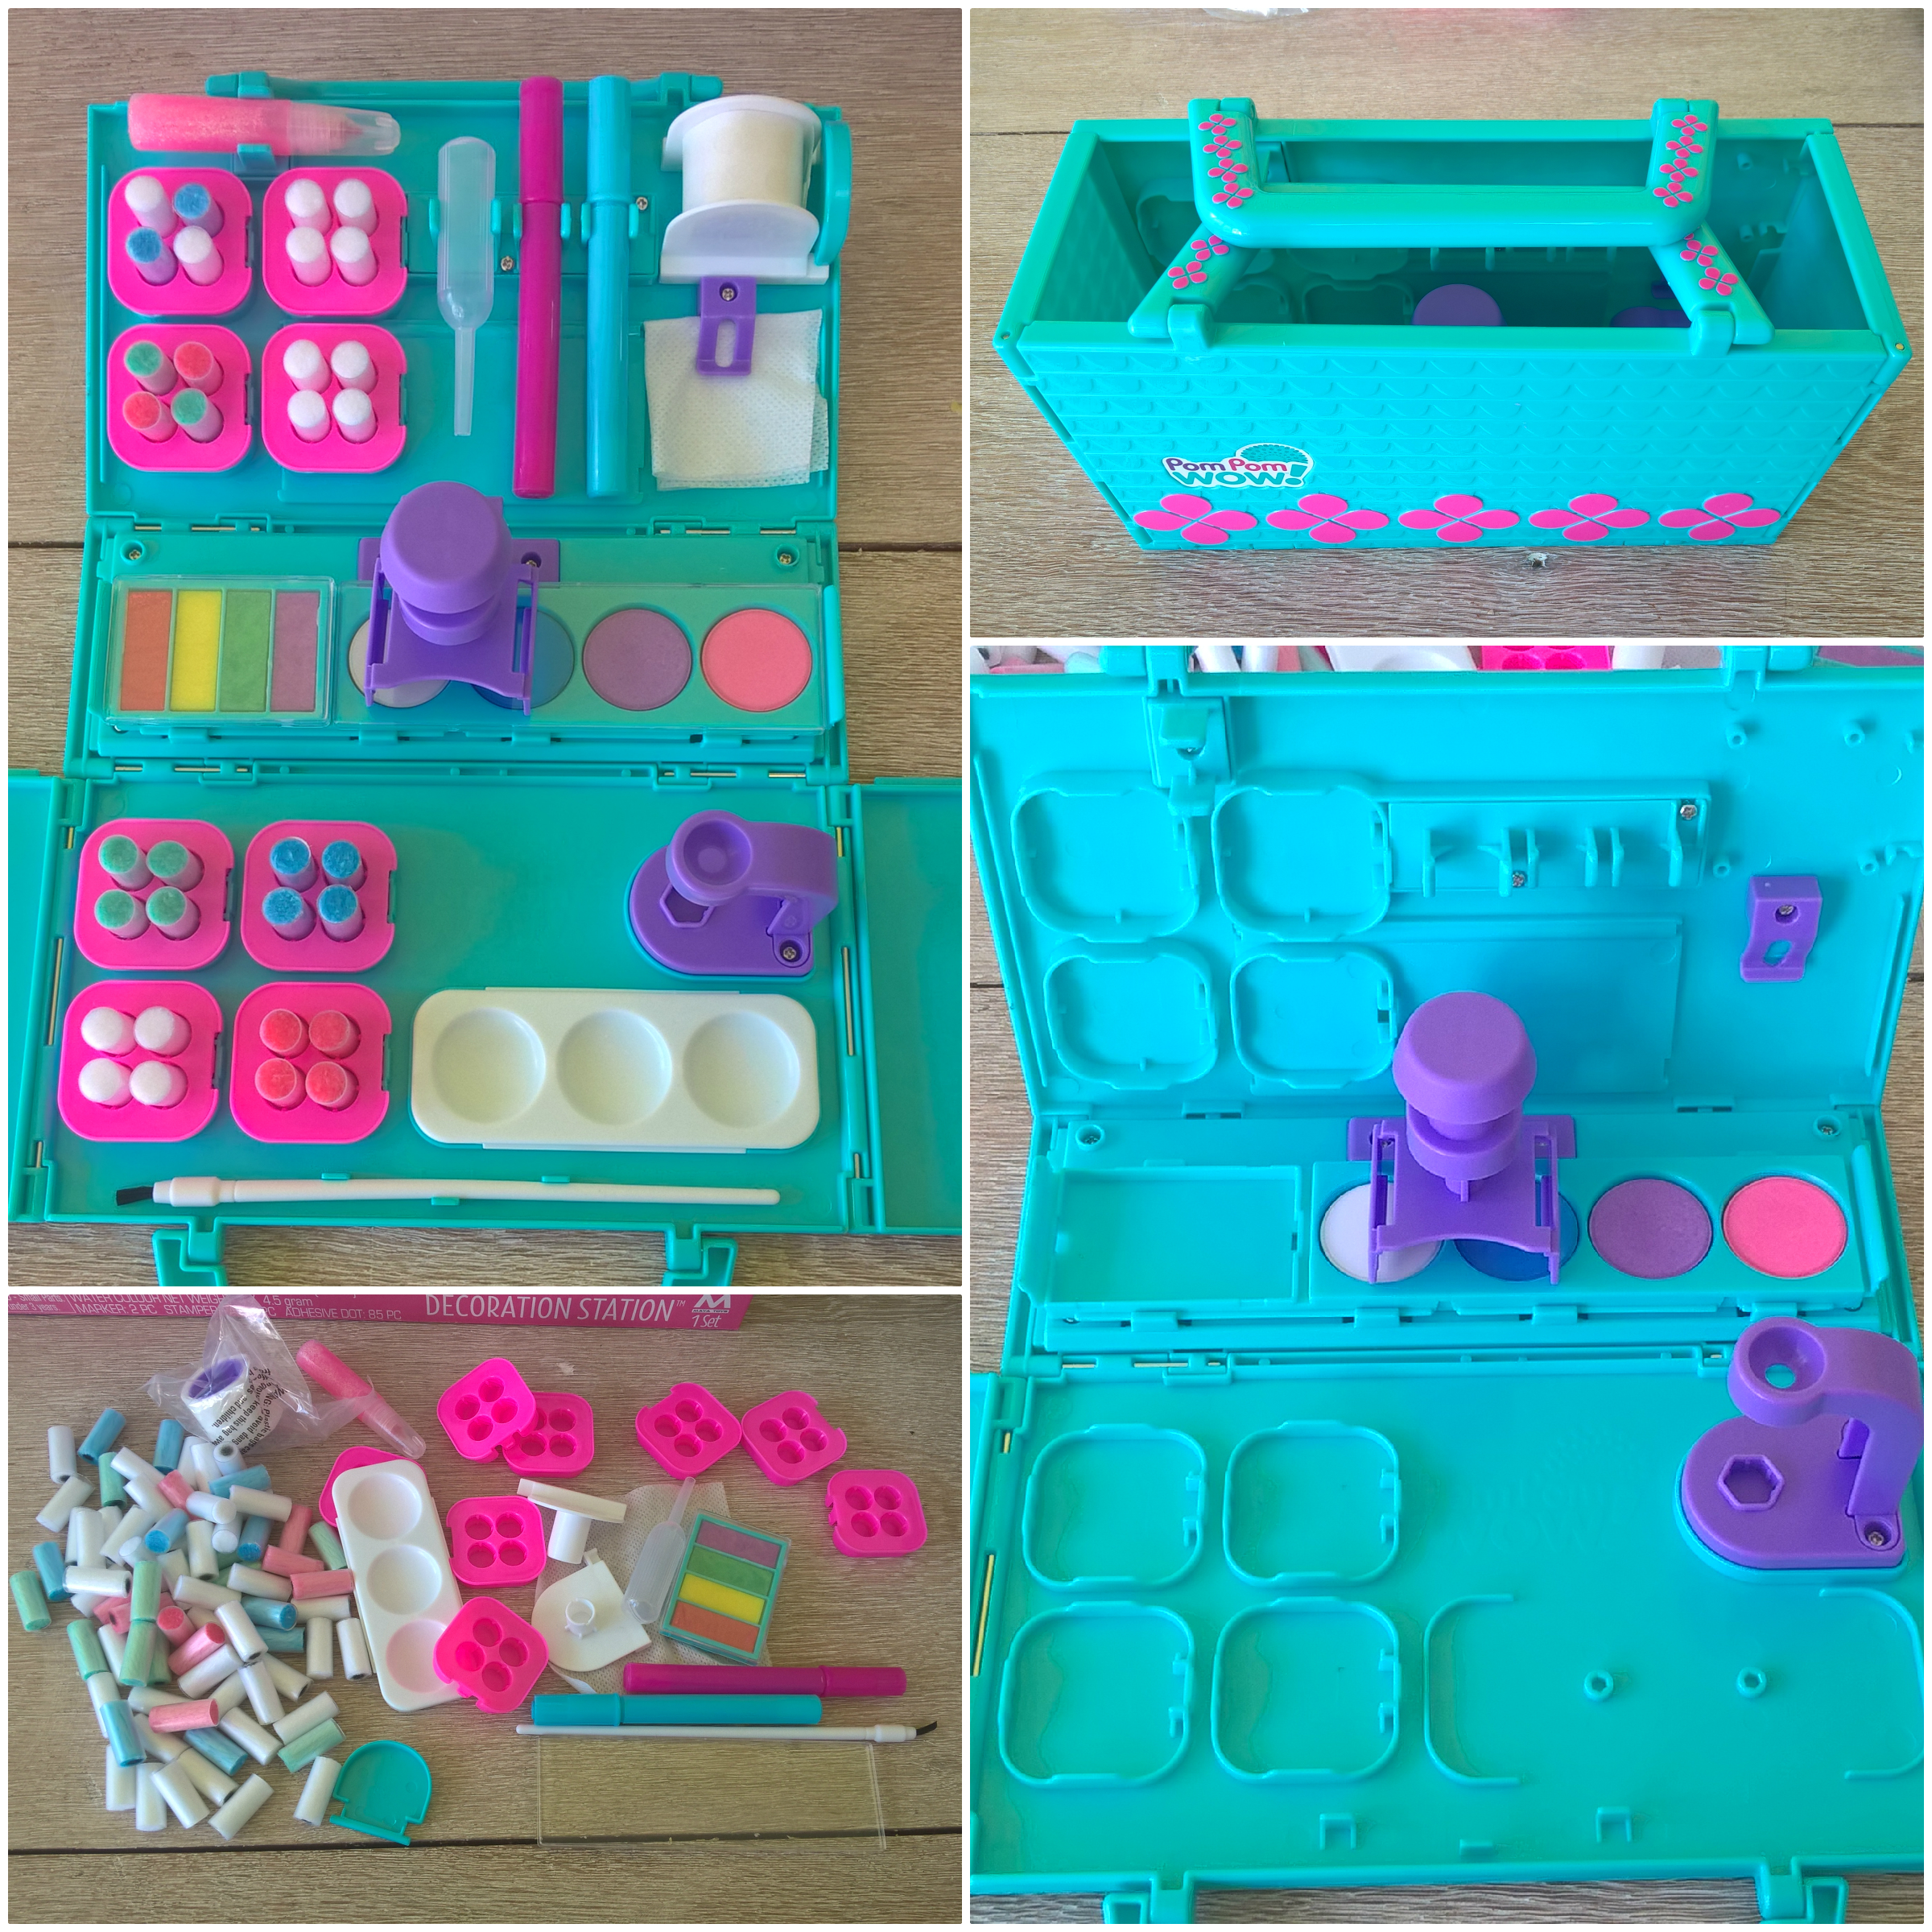 Pom WOW Decoration Station Review Mummys Little